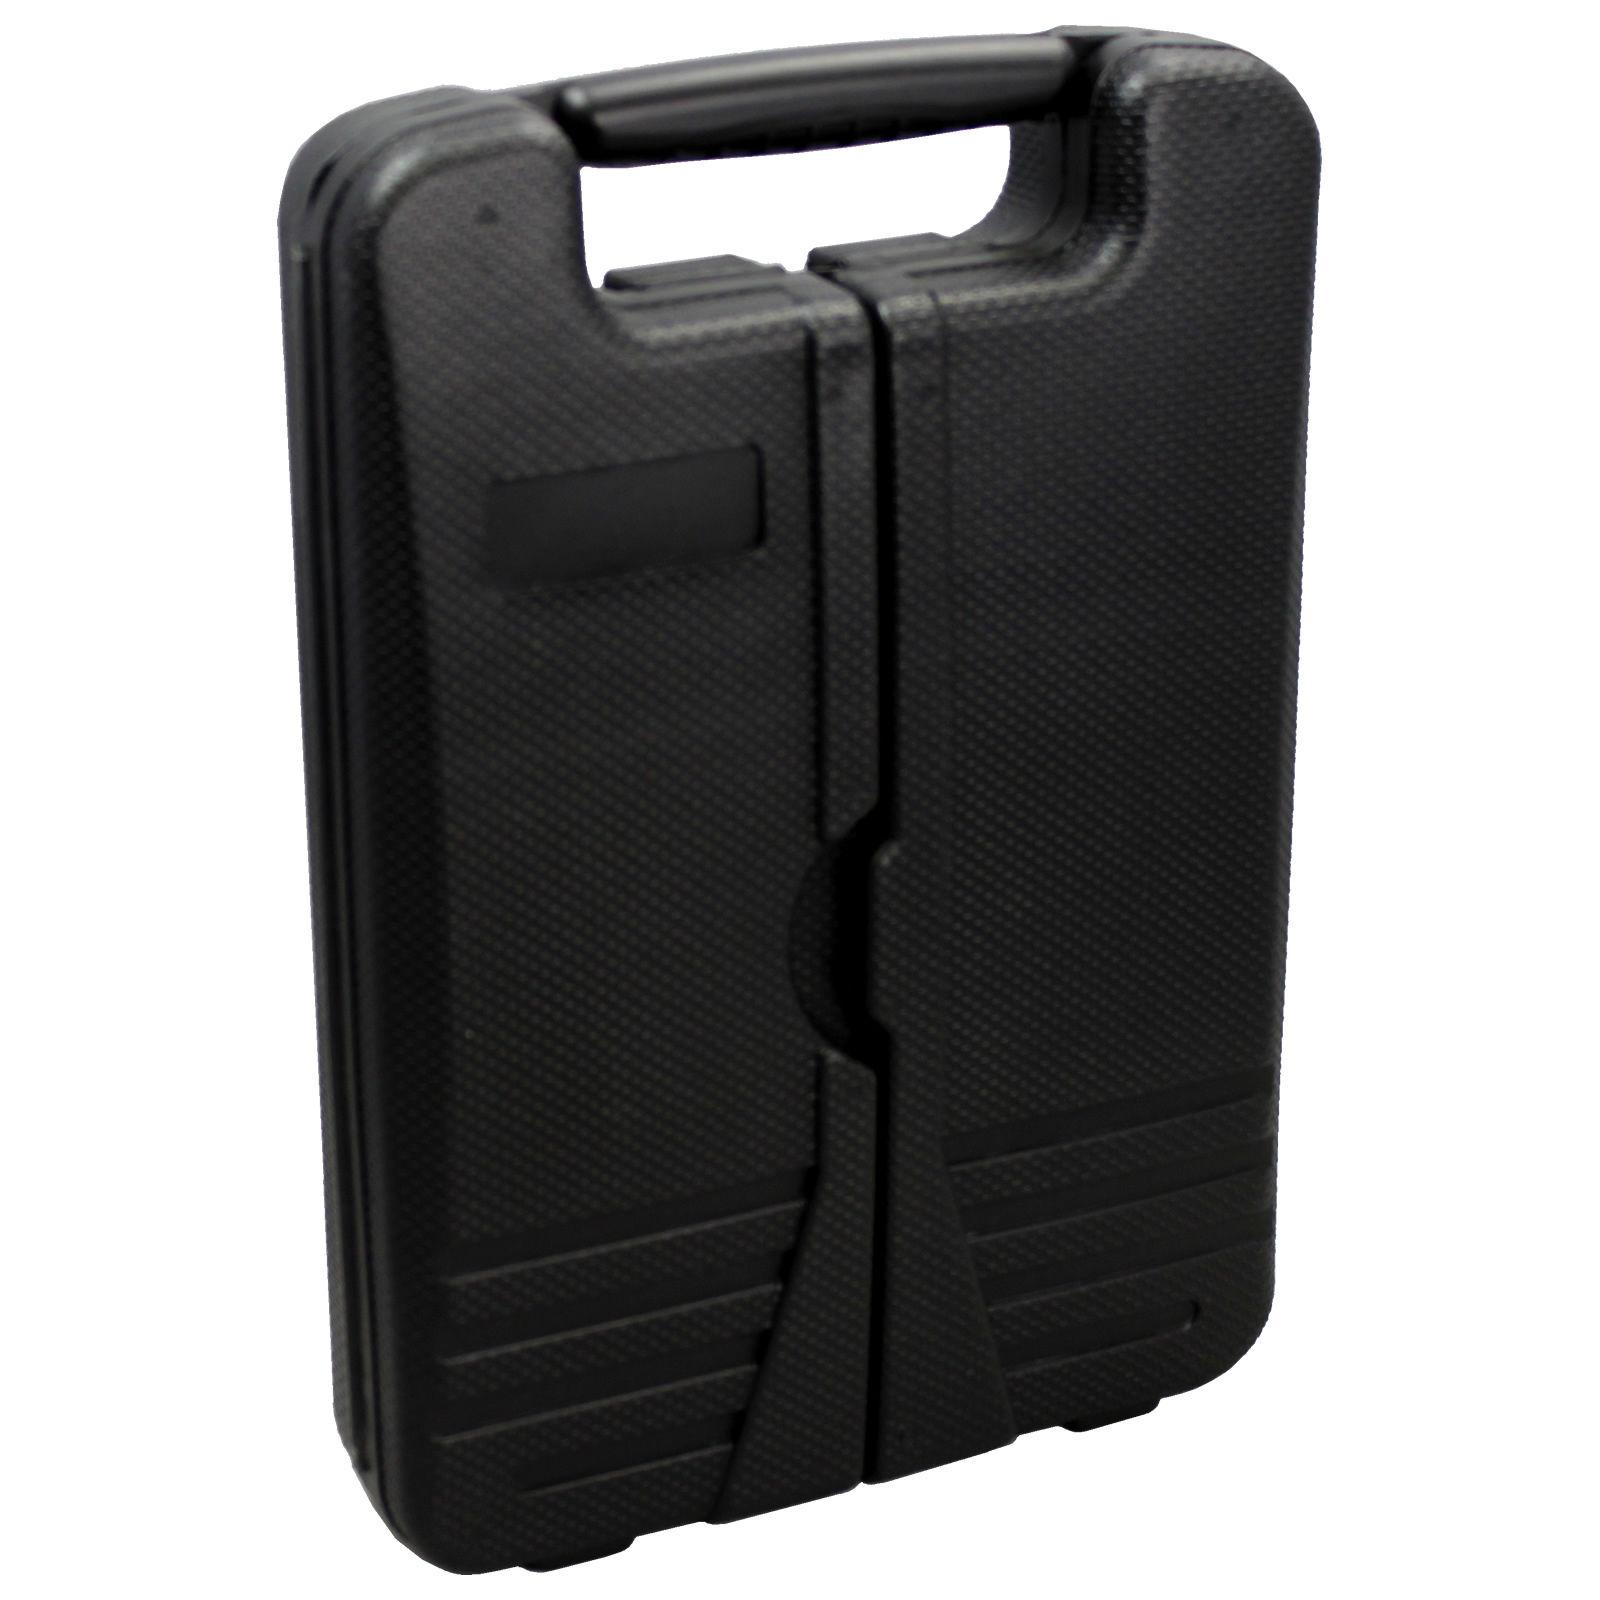 Home/Garage/Mechanic 131-Piece Tool in Carrying Case NEW